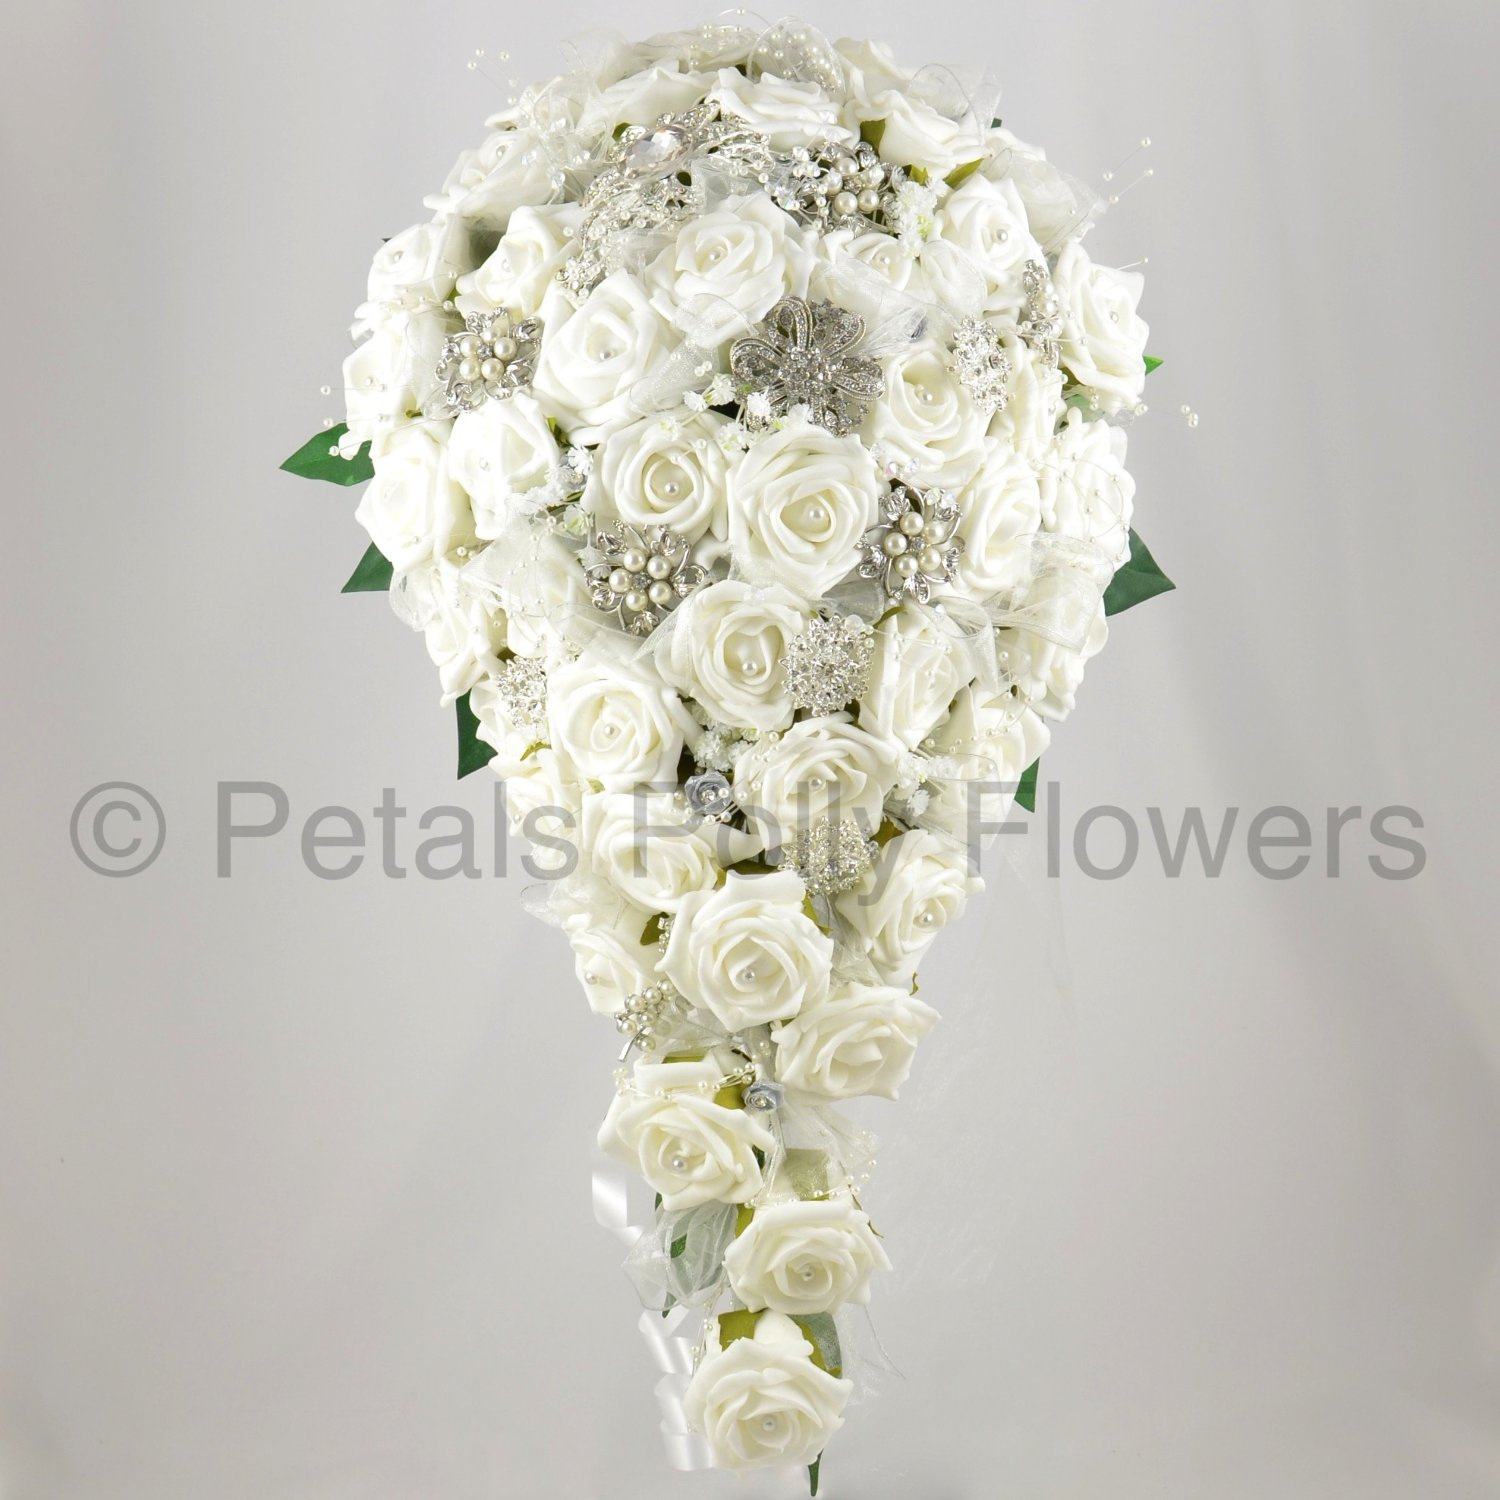 Artificial wedding flowers the artificial flowers company handmade artificial flowers brides teardrop bouquet with diamante brooches izmirmasajfo Image collections